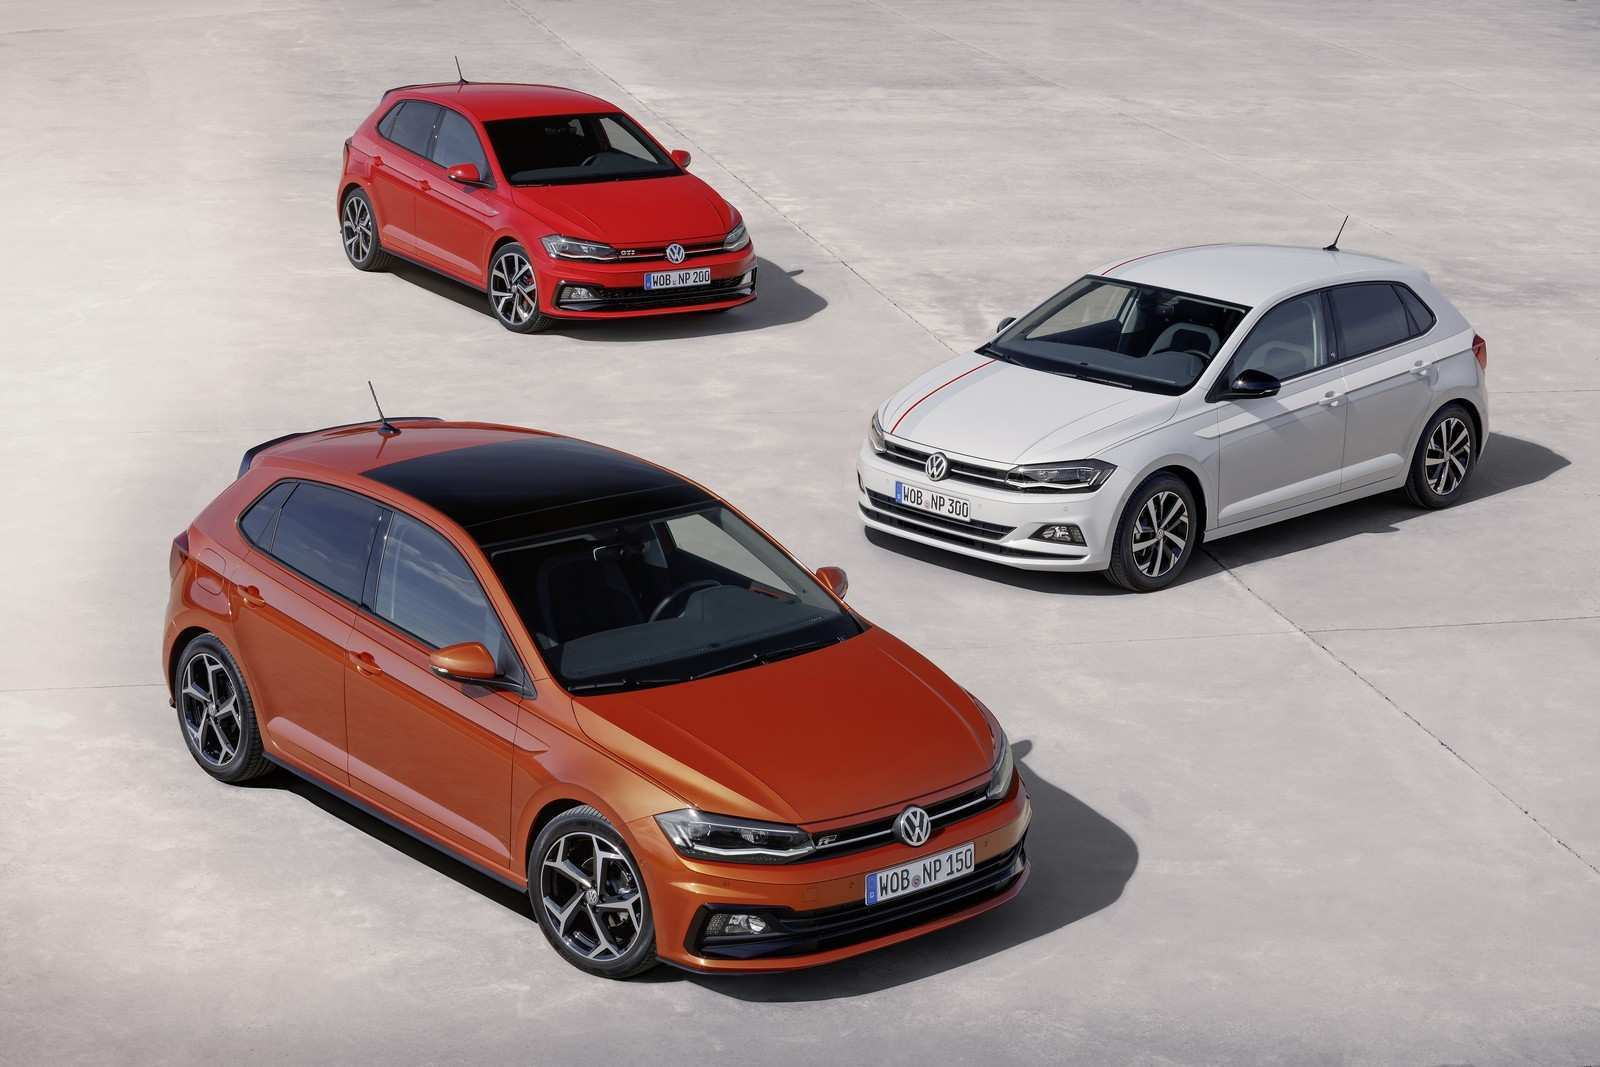 61 All New Volkswagen Polo 2020 Mexico Redesign And Concept